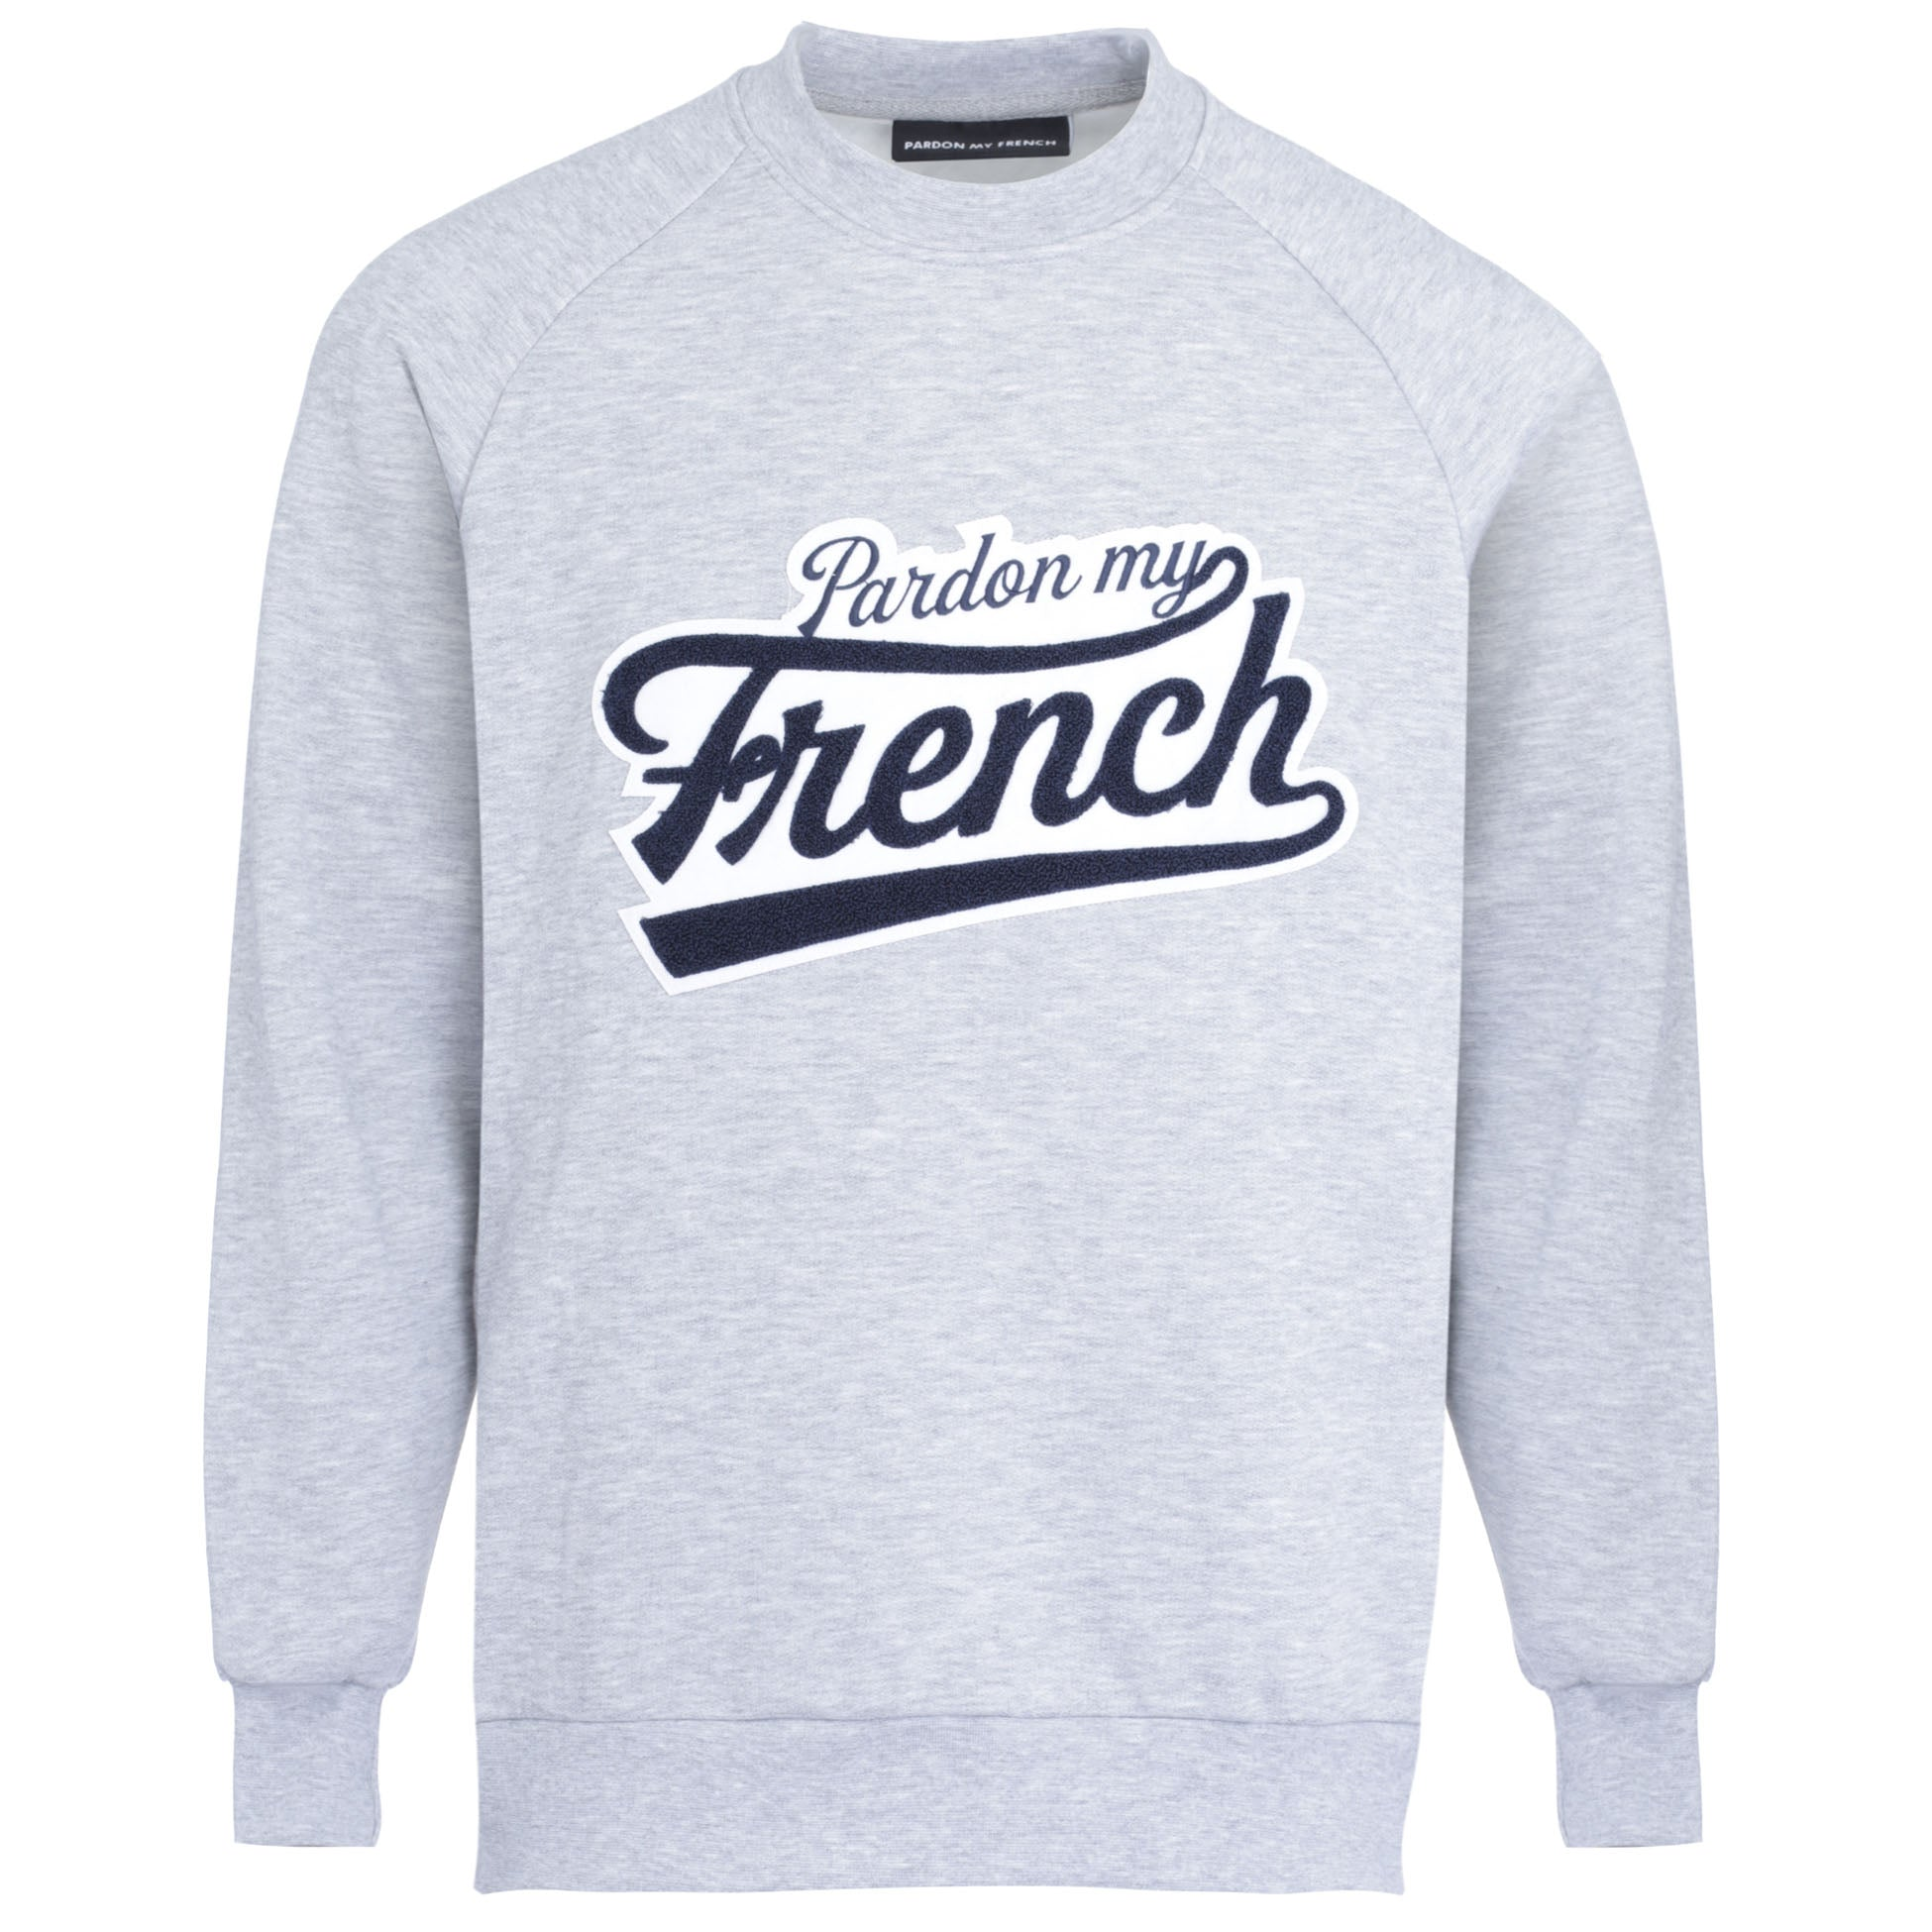 SWEAT CREW NECK COLLEGE GREY